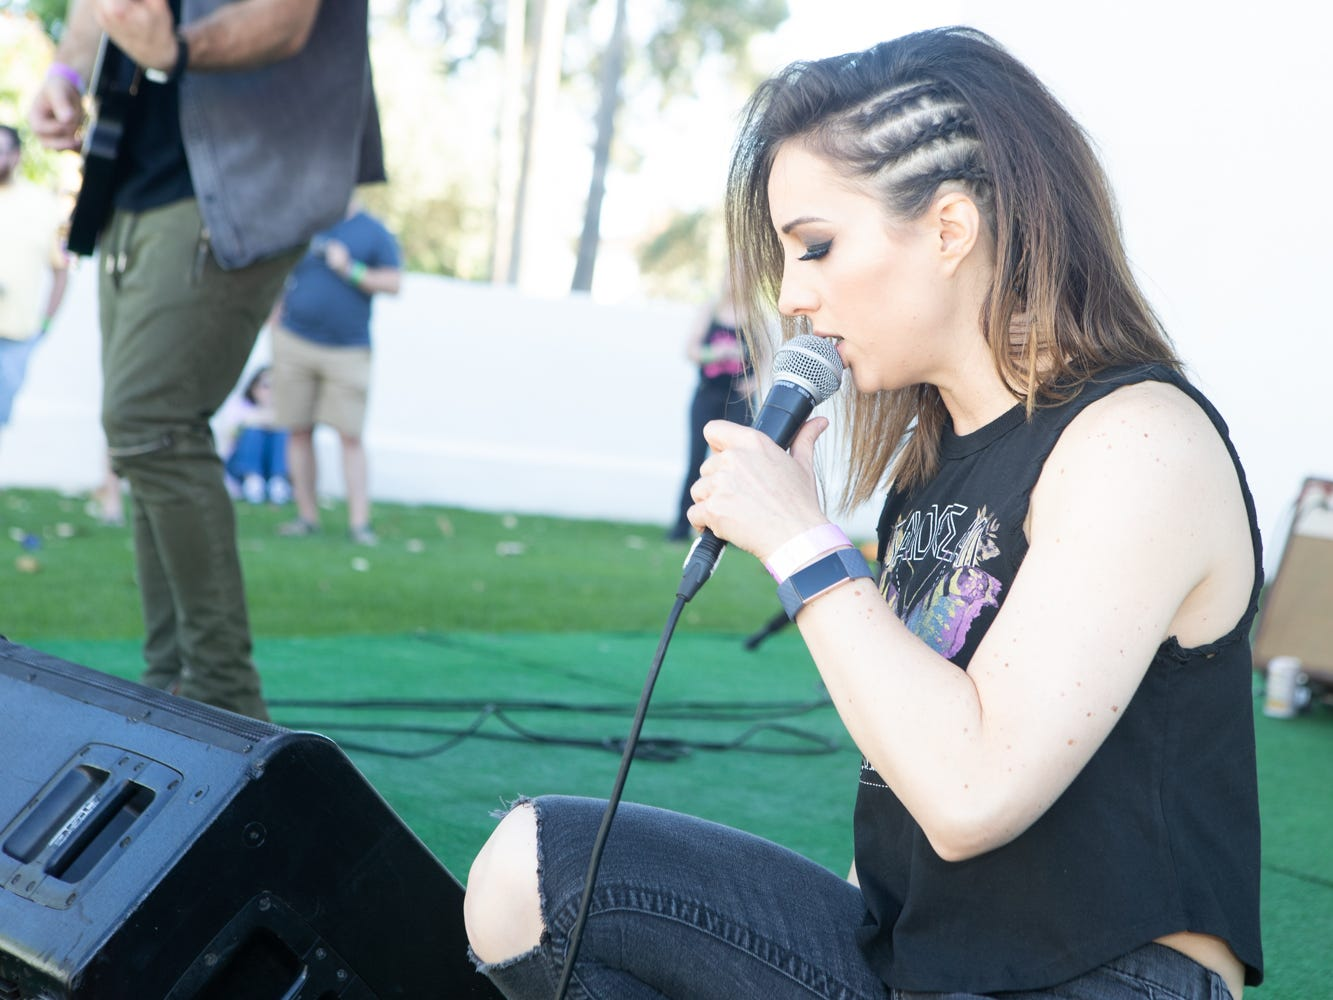 Jane N' The Jungle performs at the Scottsdale Culinary Festival on April 13, 2019.